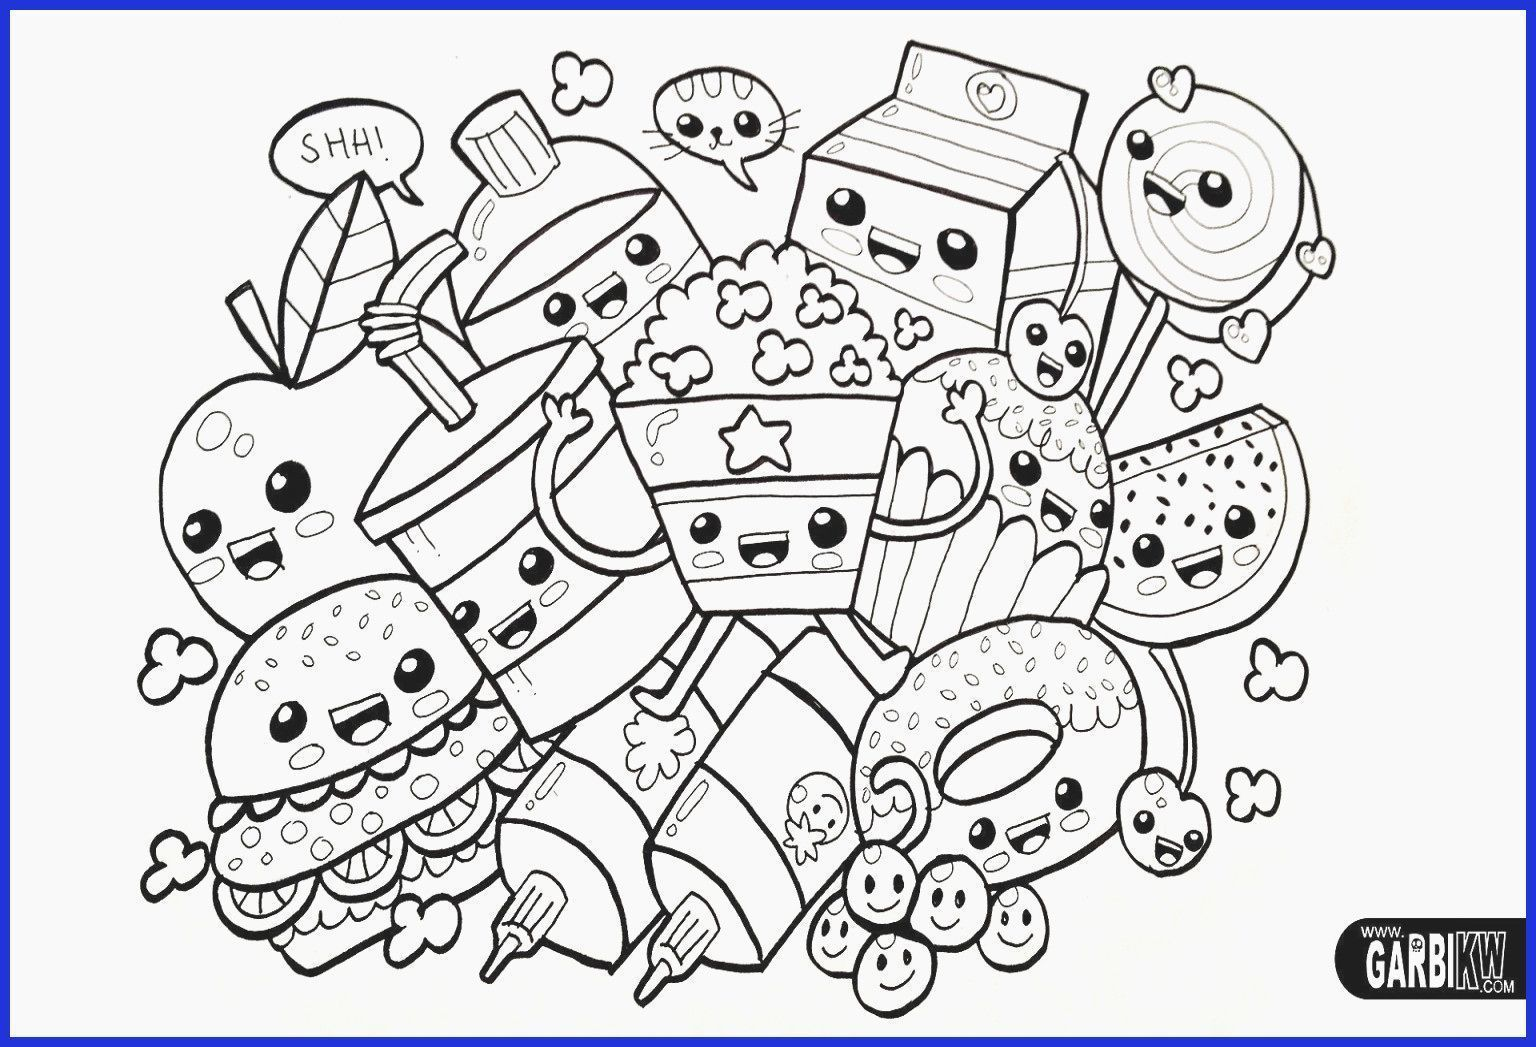 Anime Coloring Page Kawaii Beautiful Cute Anime Coloring Pages Unique 52 Most Supreme Girls Co In 2021 Unicorn Coloring Pages Food Coloring Pages Animal Coloring Pages